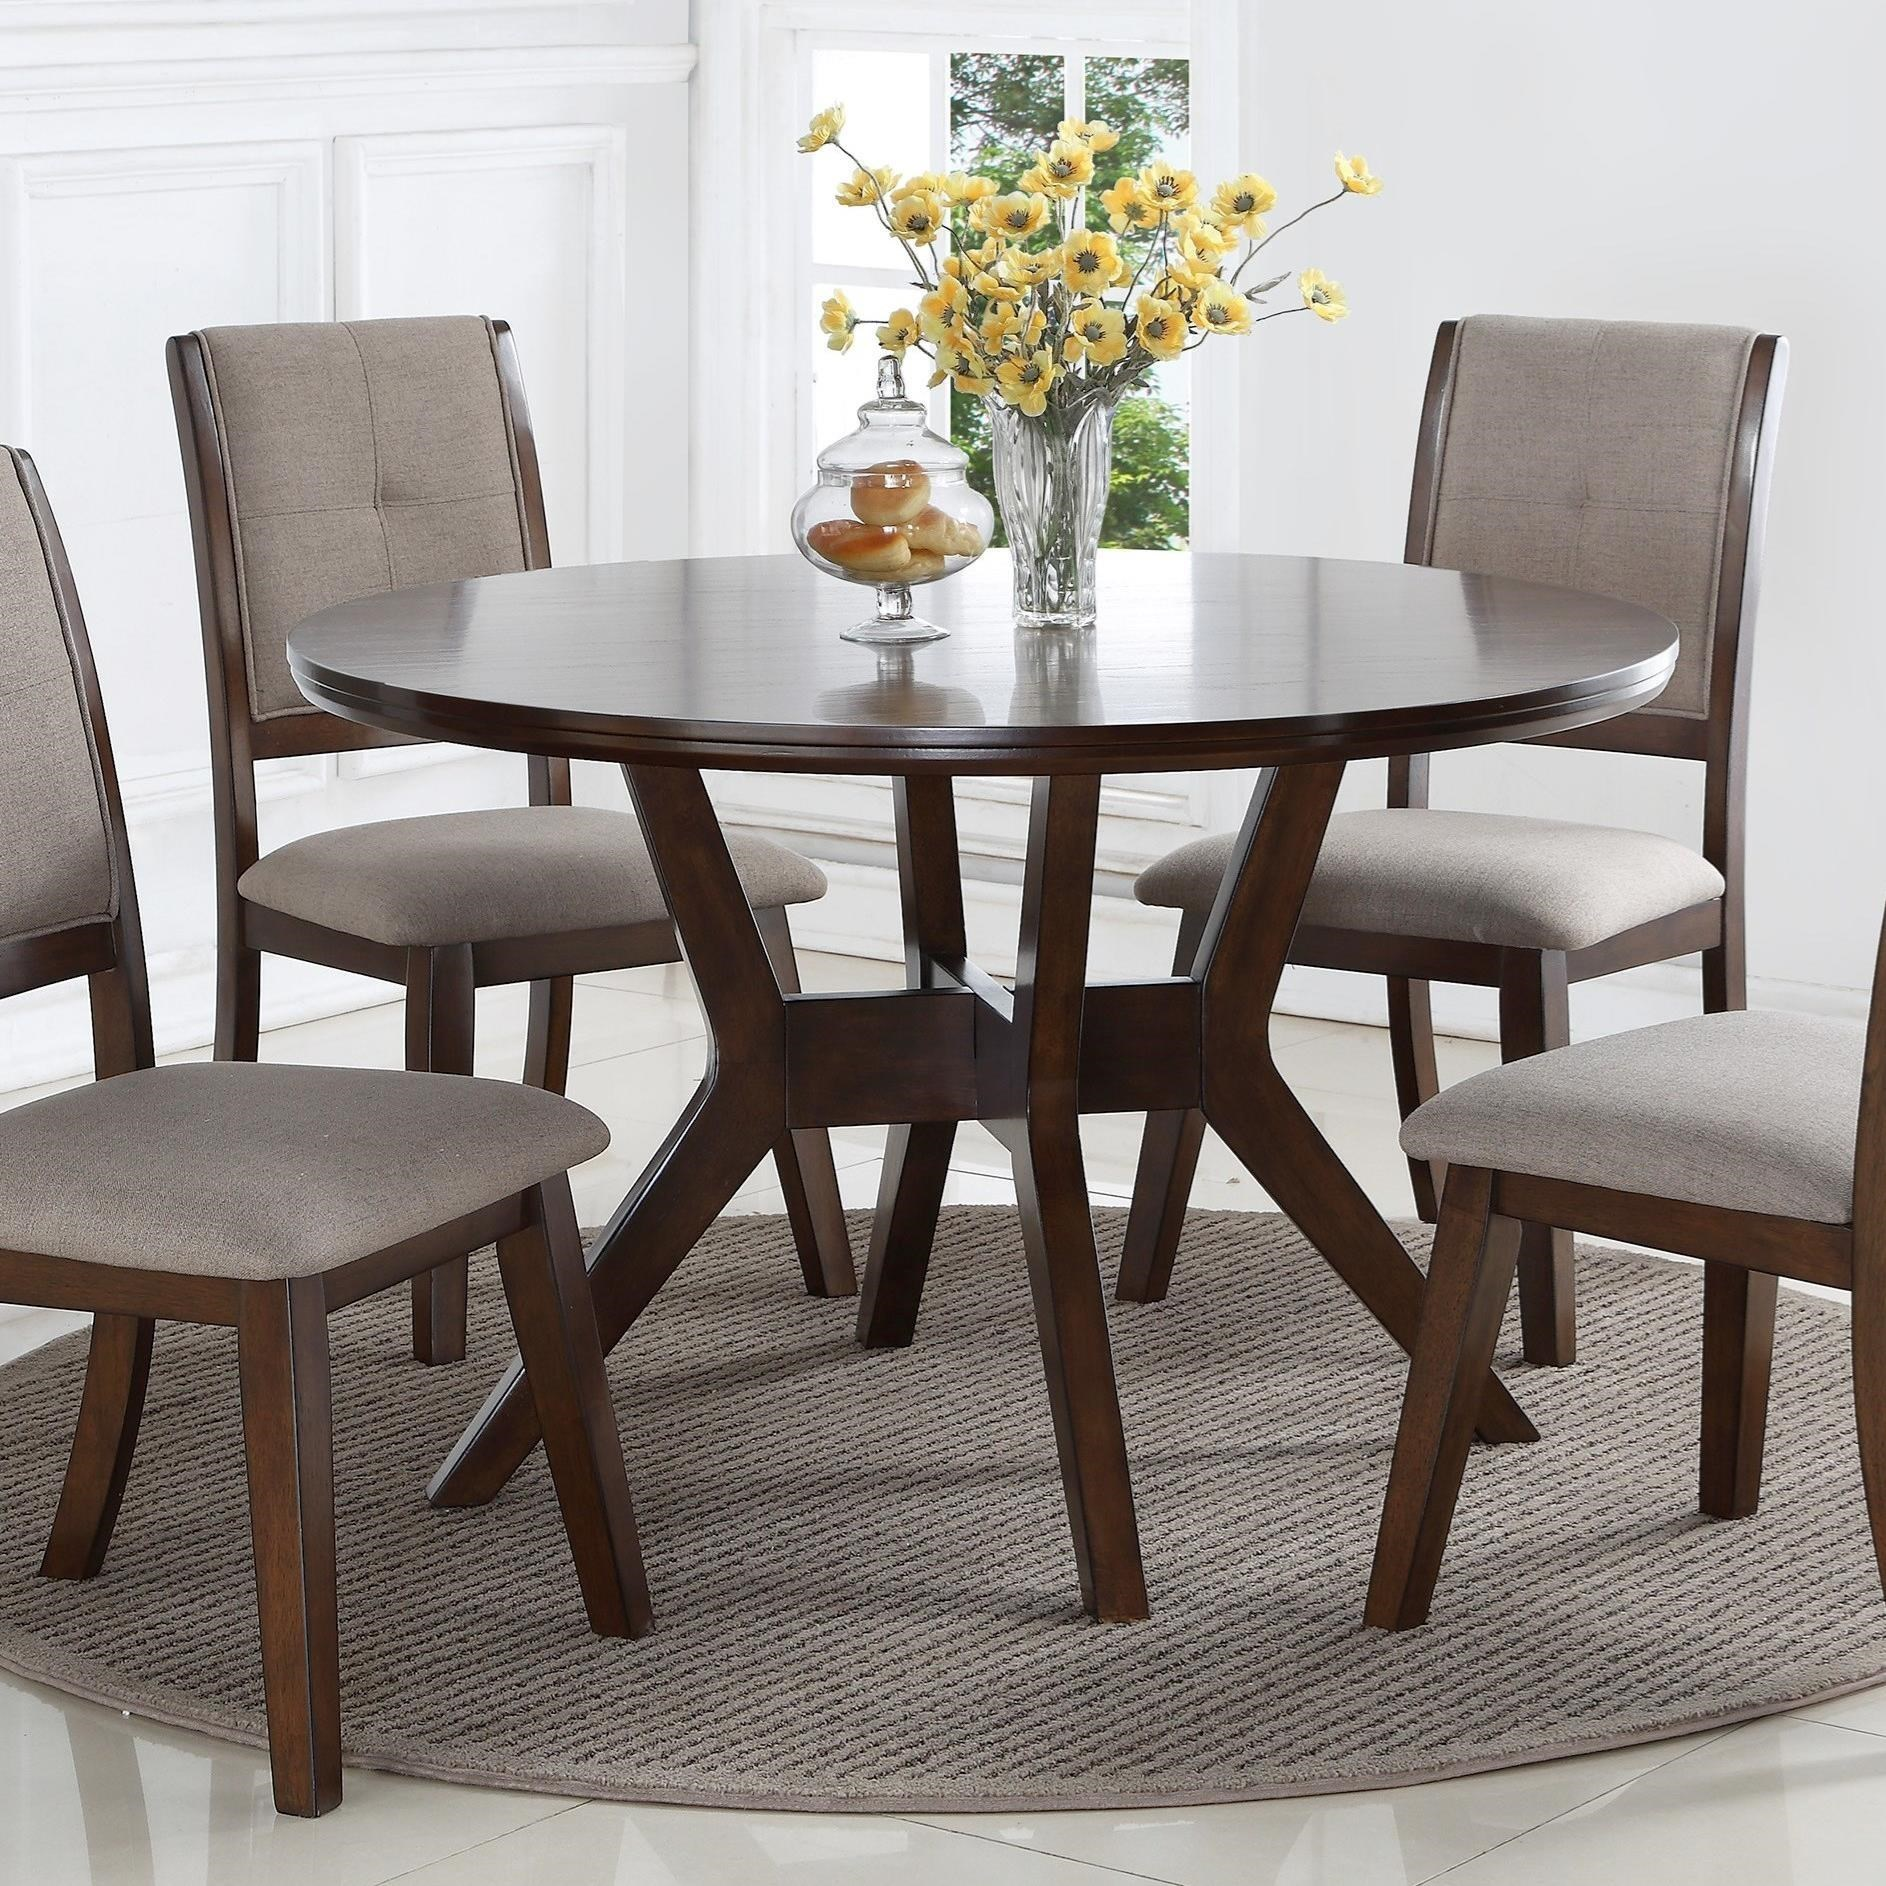 Mid Century Round Dining Rooms: Crown Mark Barney 2322T-48 Mid-Century Modern Round Dining